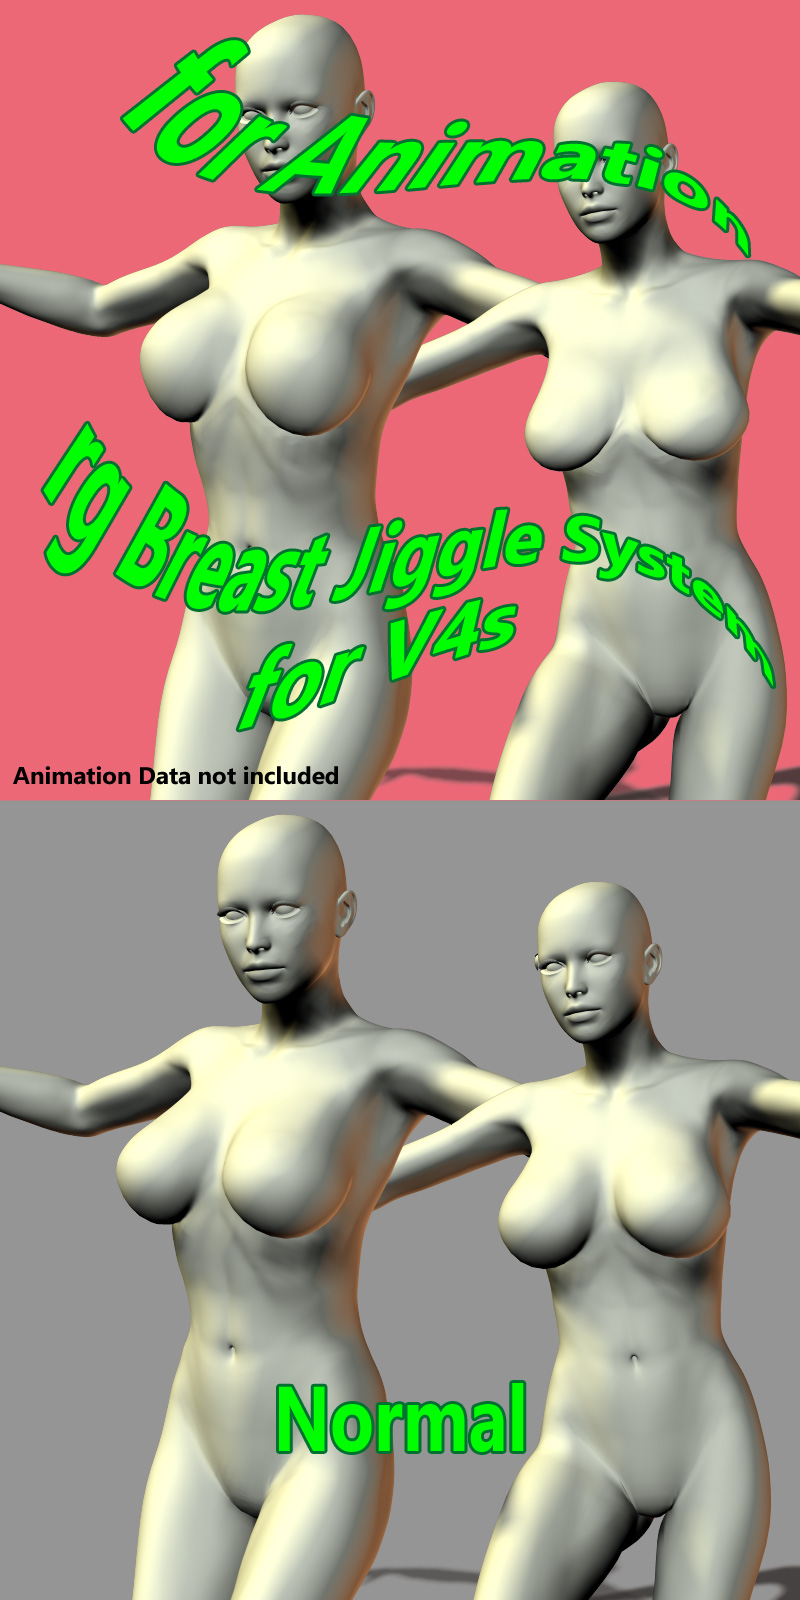 rg Breast Jiggle System for V4s